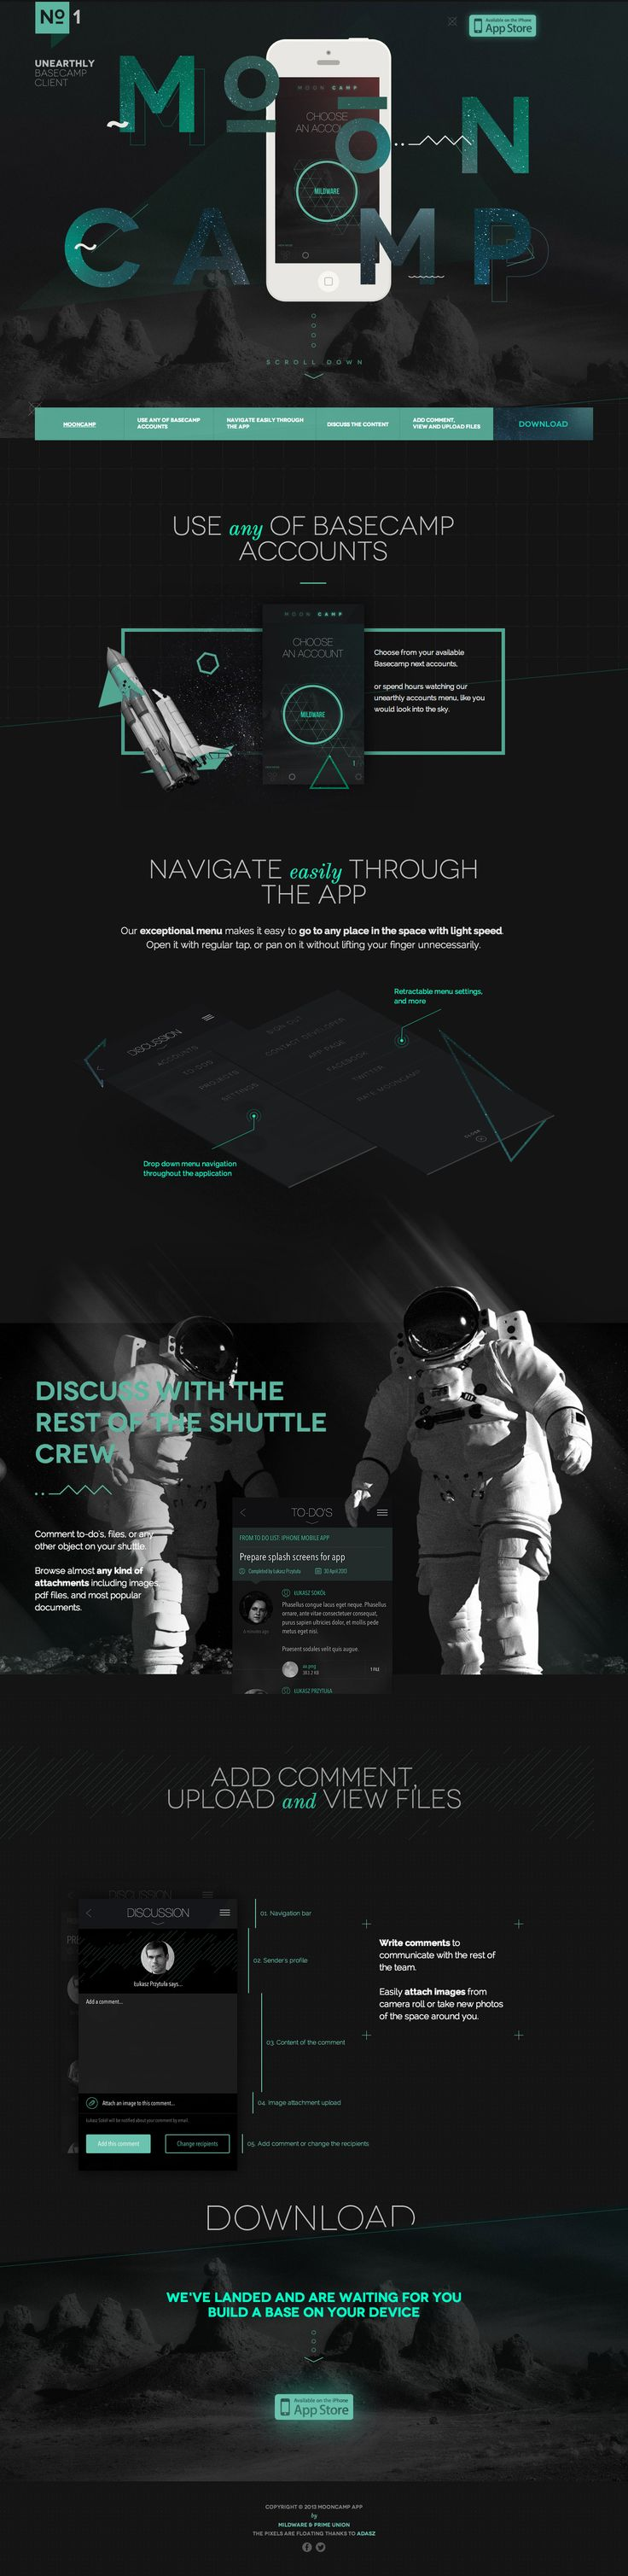 Mooncamp App. Create your own base camp when landed. #webdesign #design (View more at www.aldenchong.com)